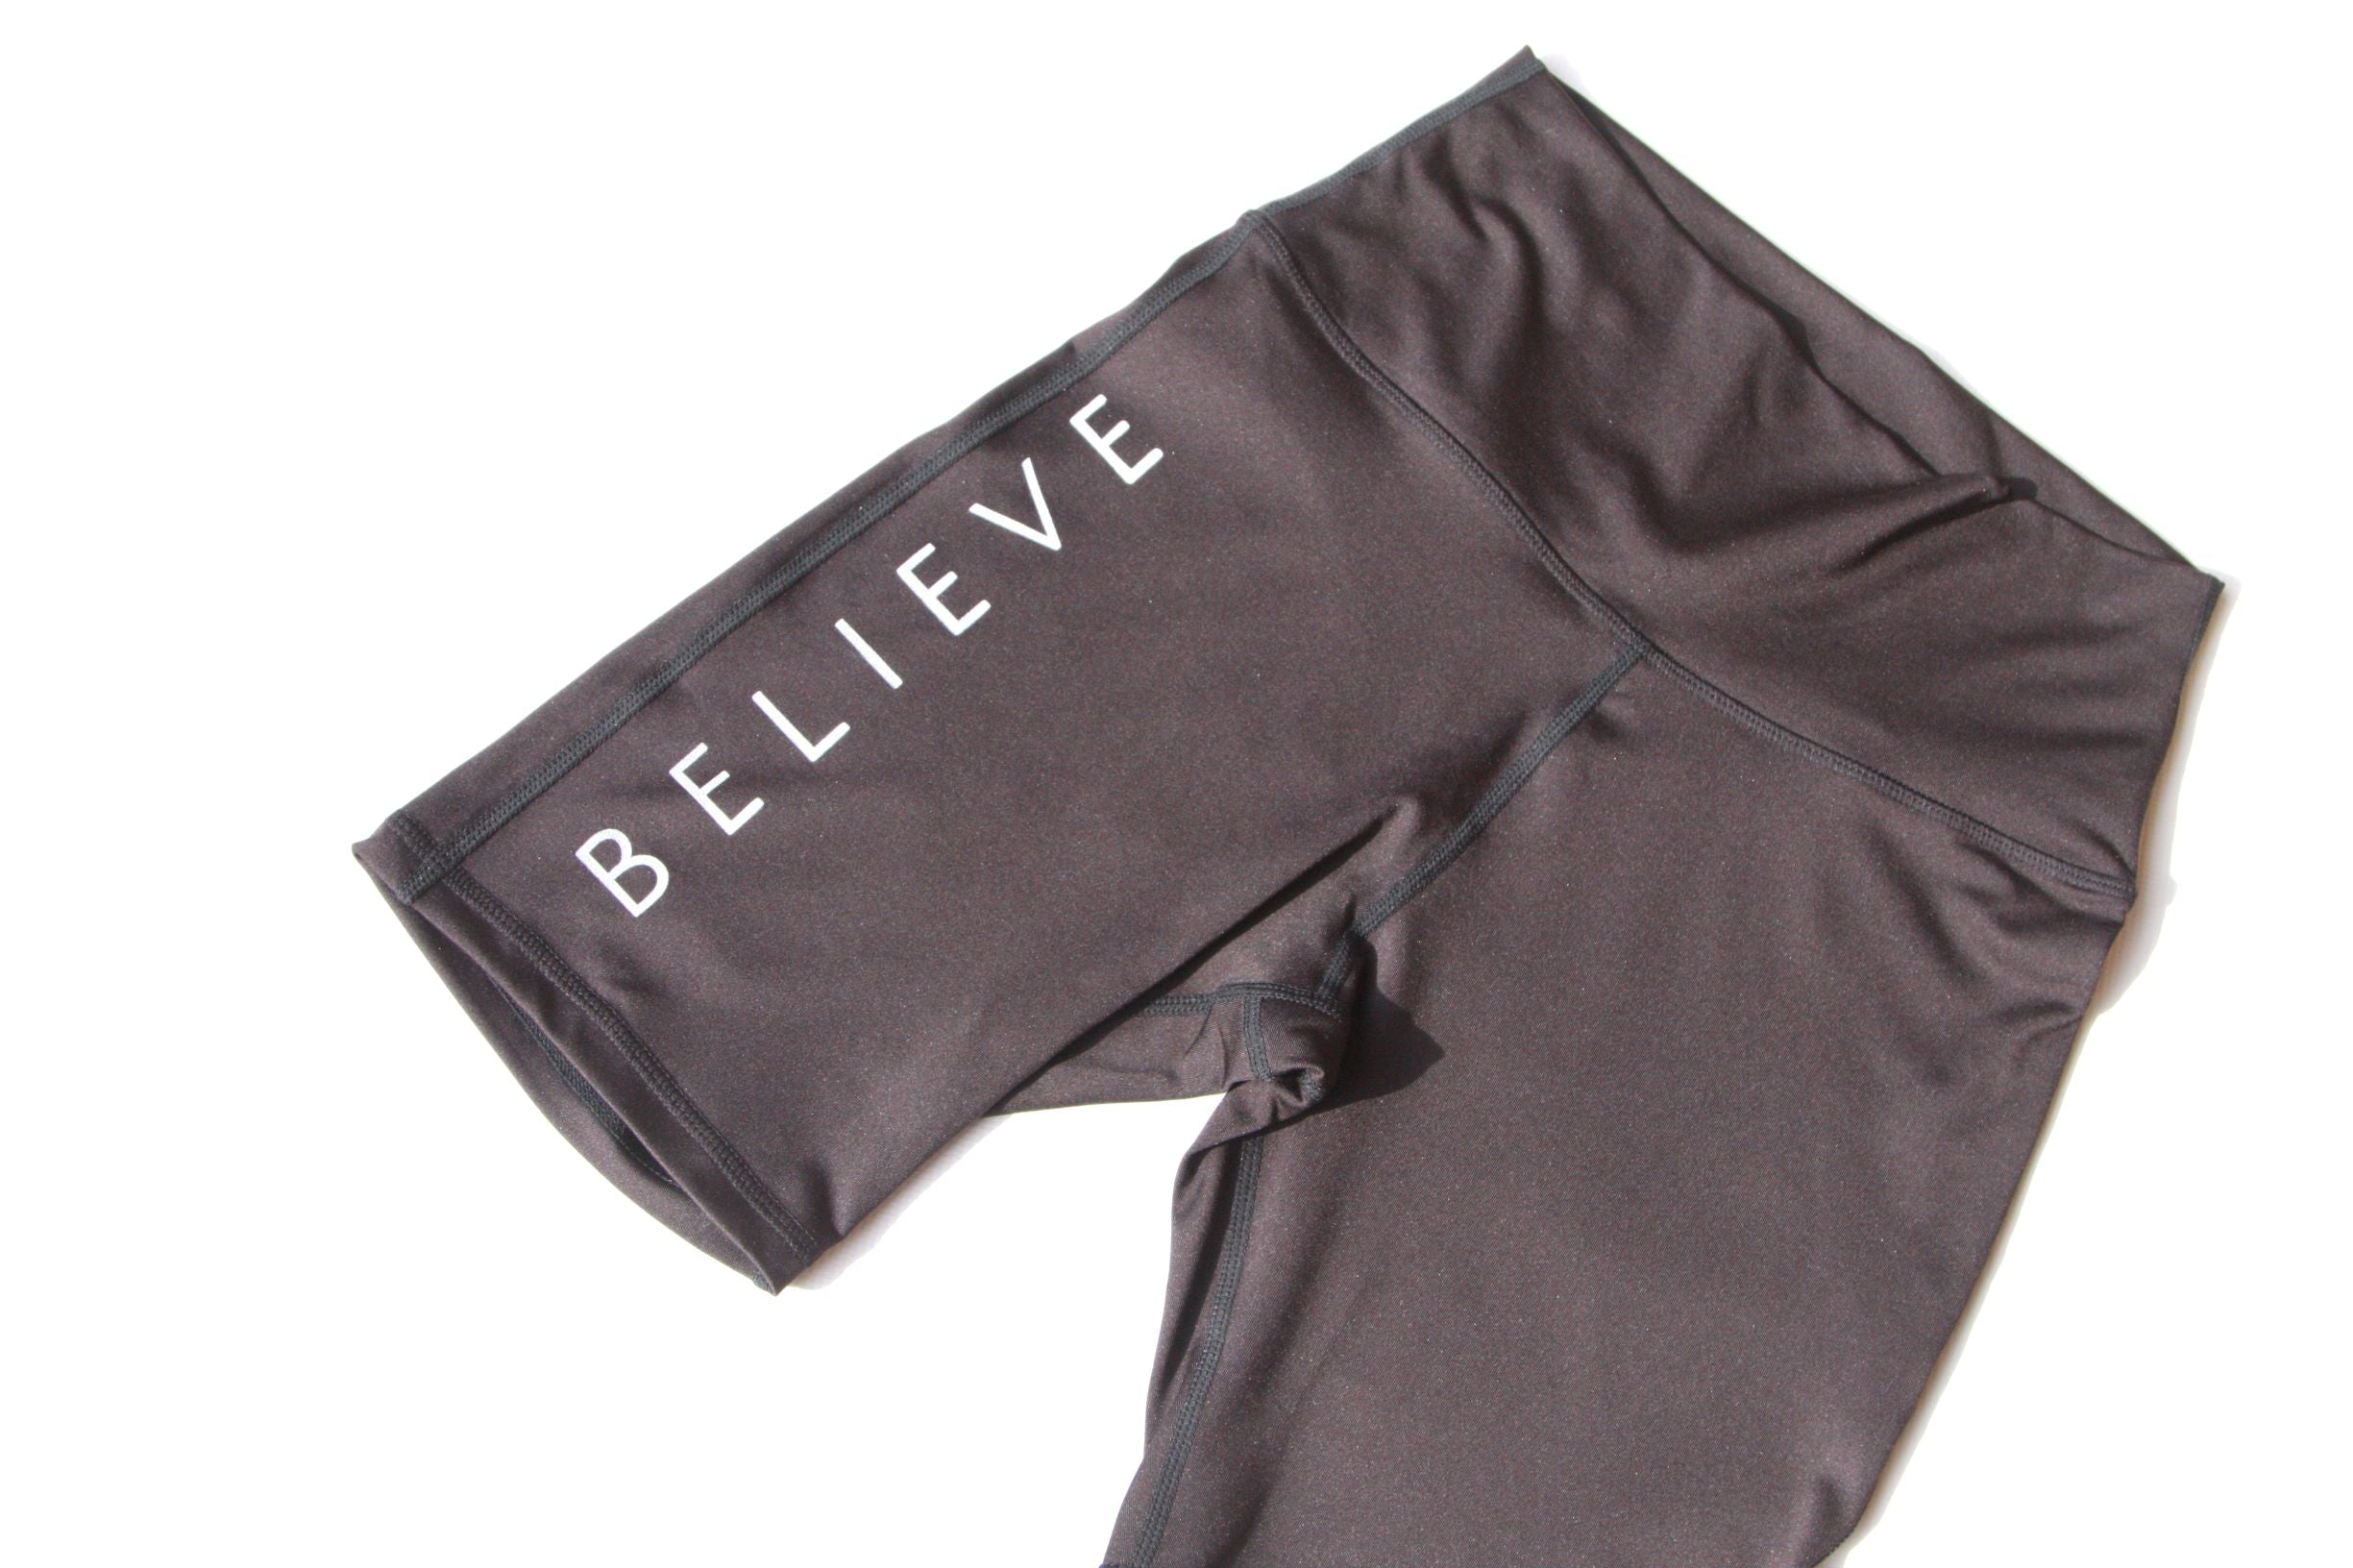 Black high waisted sports shorts with the word Believe printed on one leg in white ink